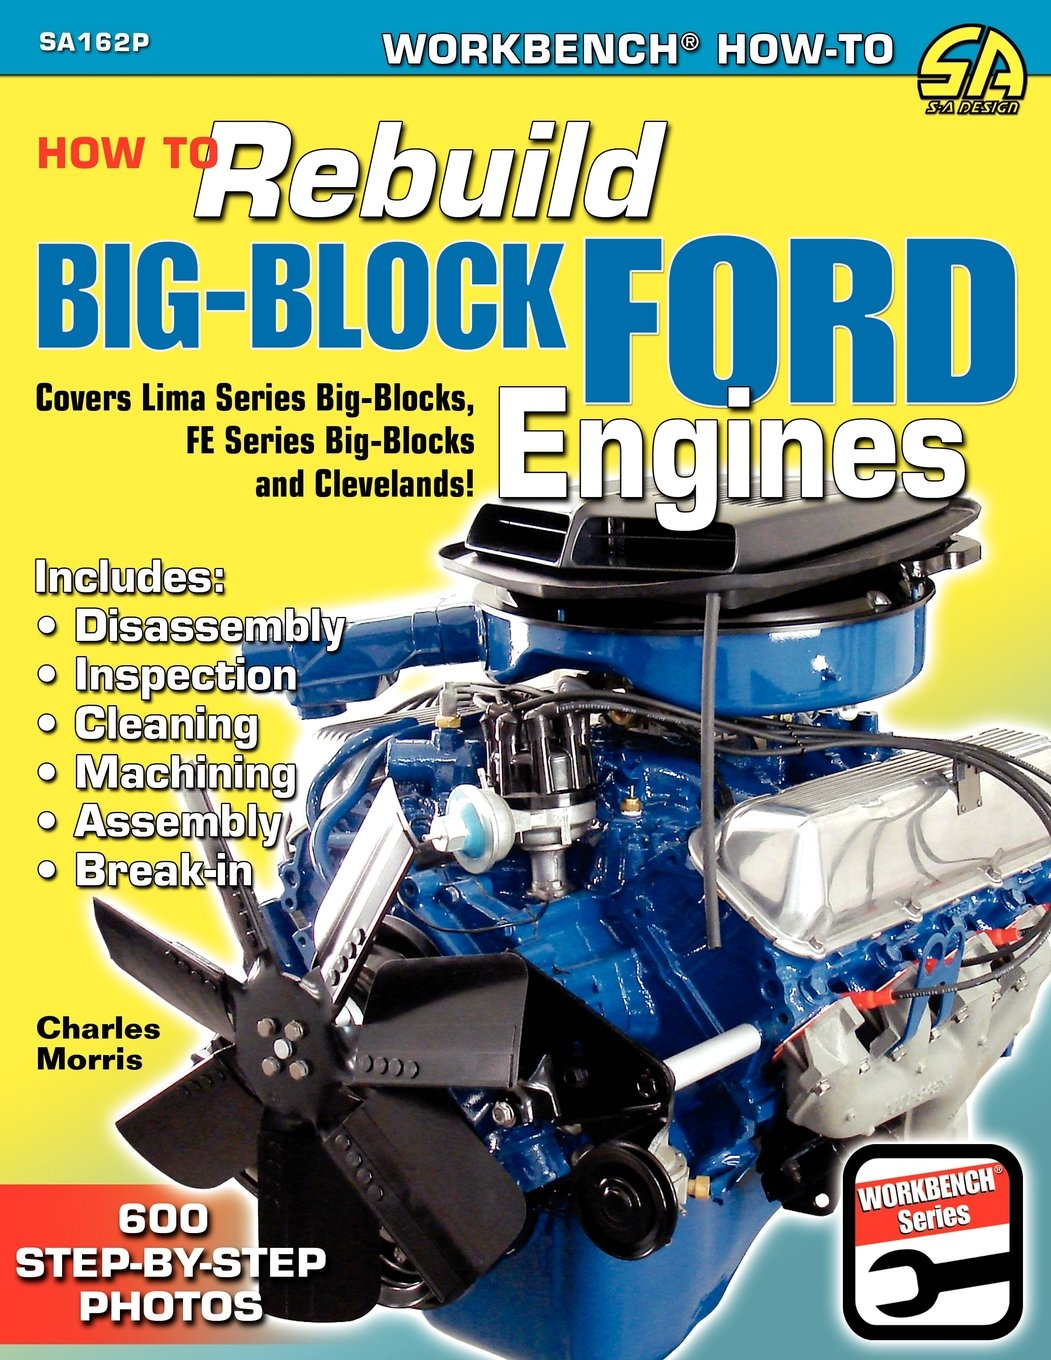 How to rebuild big block ford engines workbench how to charles how to rebuild big block ford engines workbench how to charles morris 9781613250686 amazon books fandeluxe Images